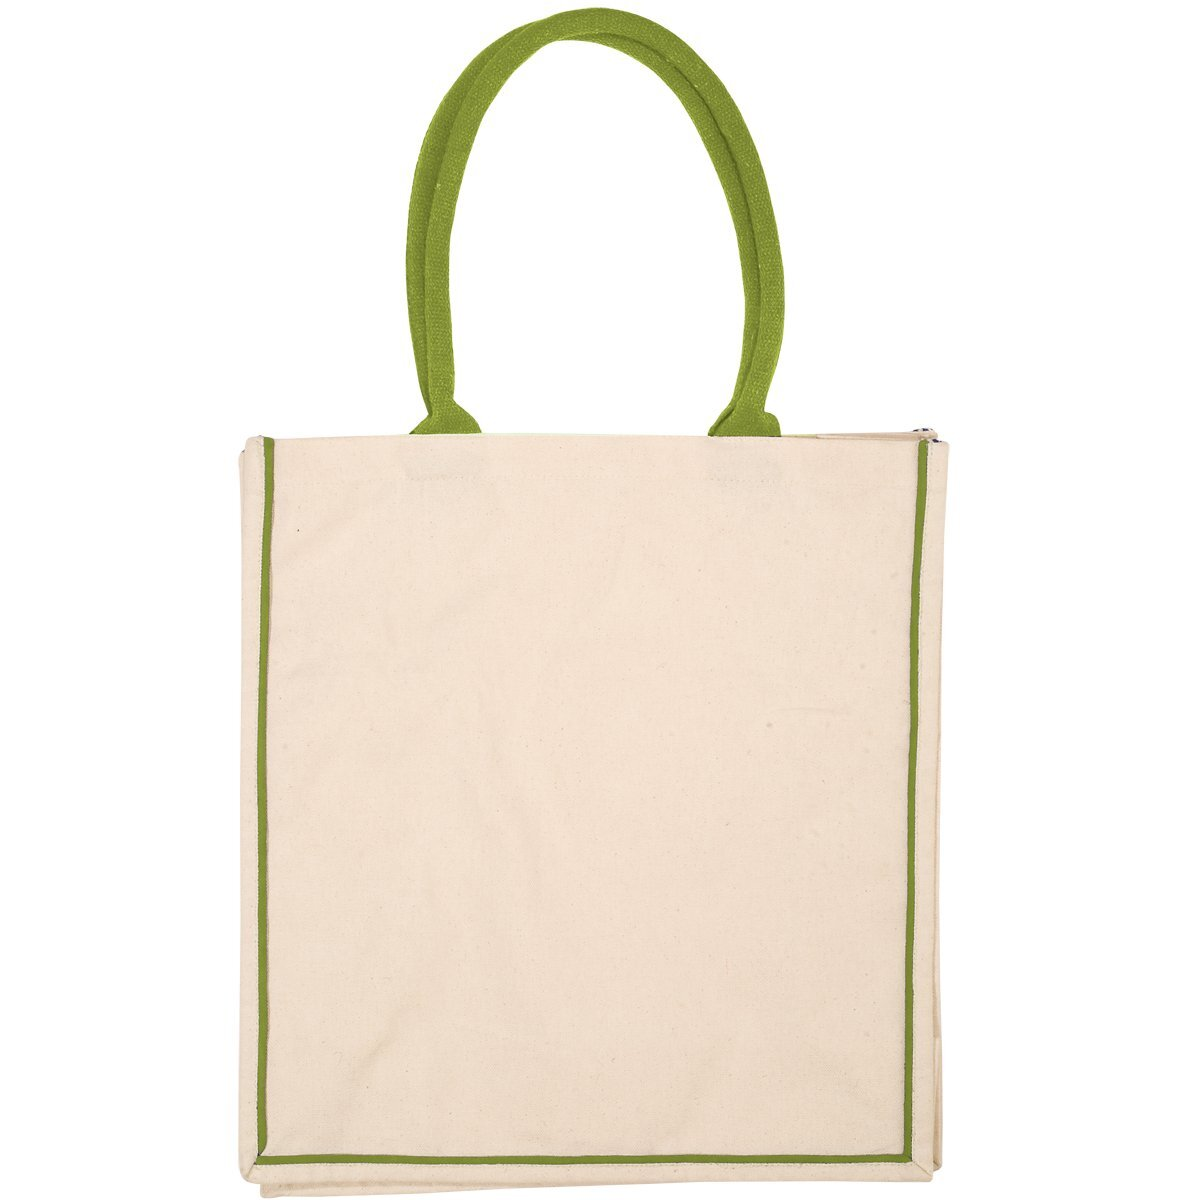 Piped Nantucket Cotton Tote